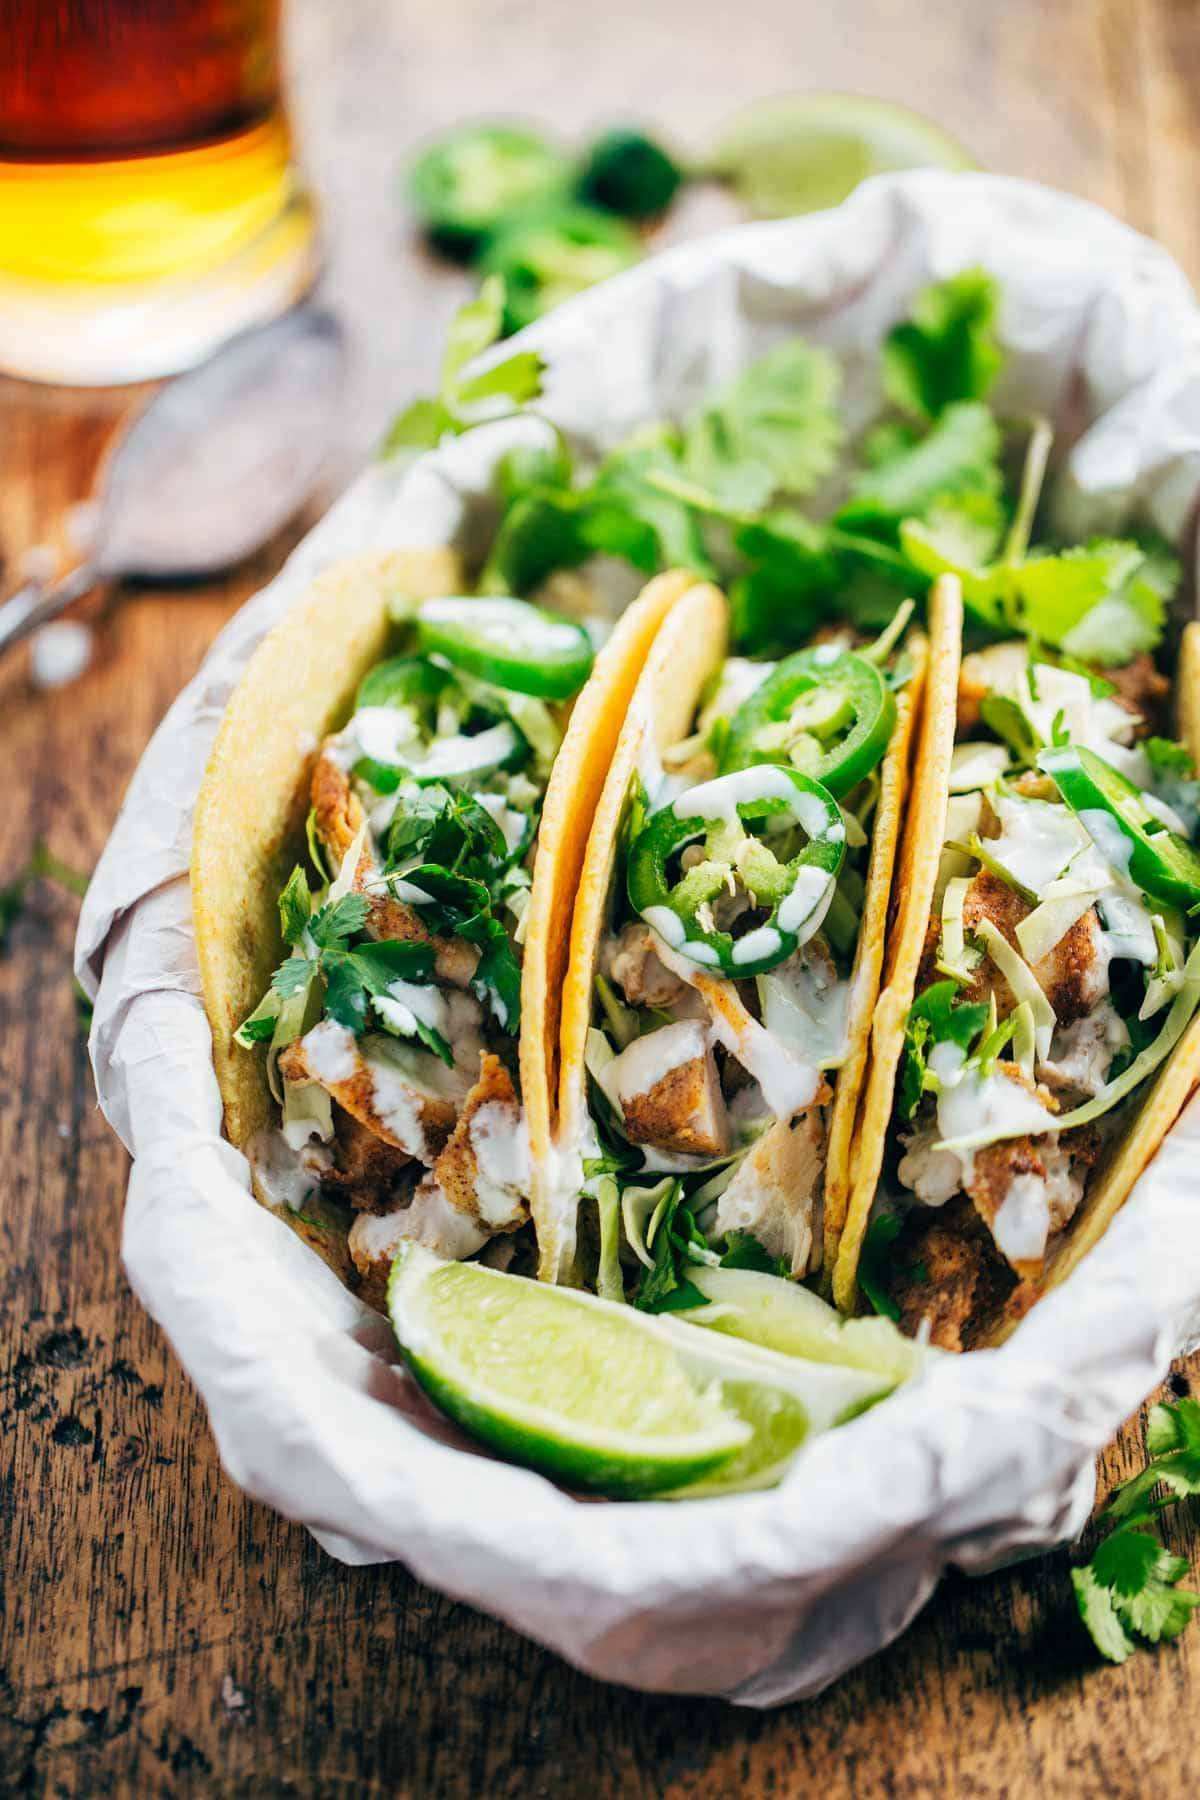 Chicken Tacos with limes and herbs.